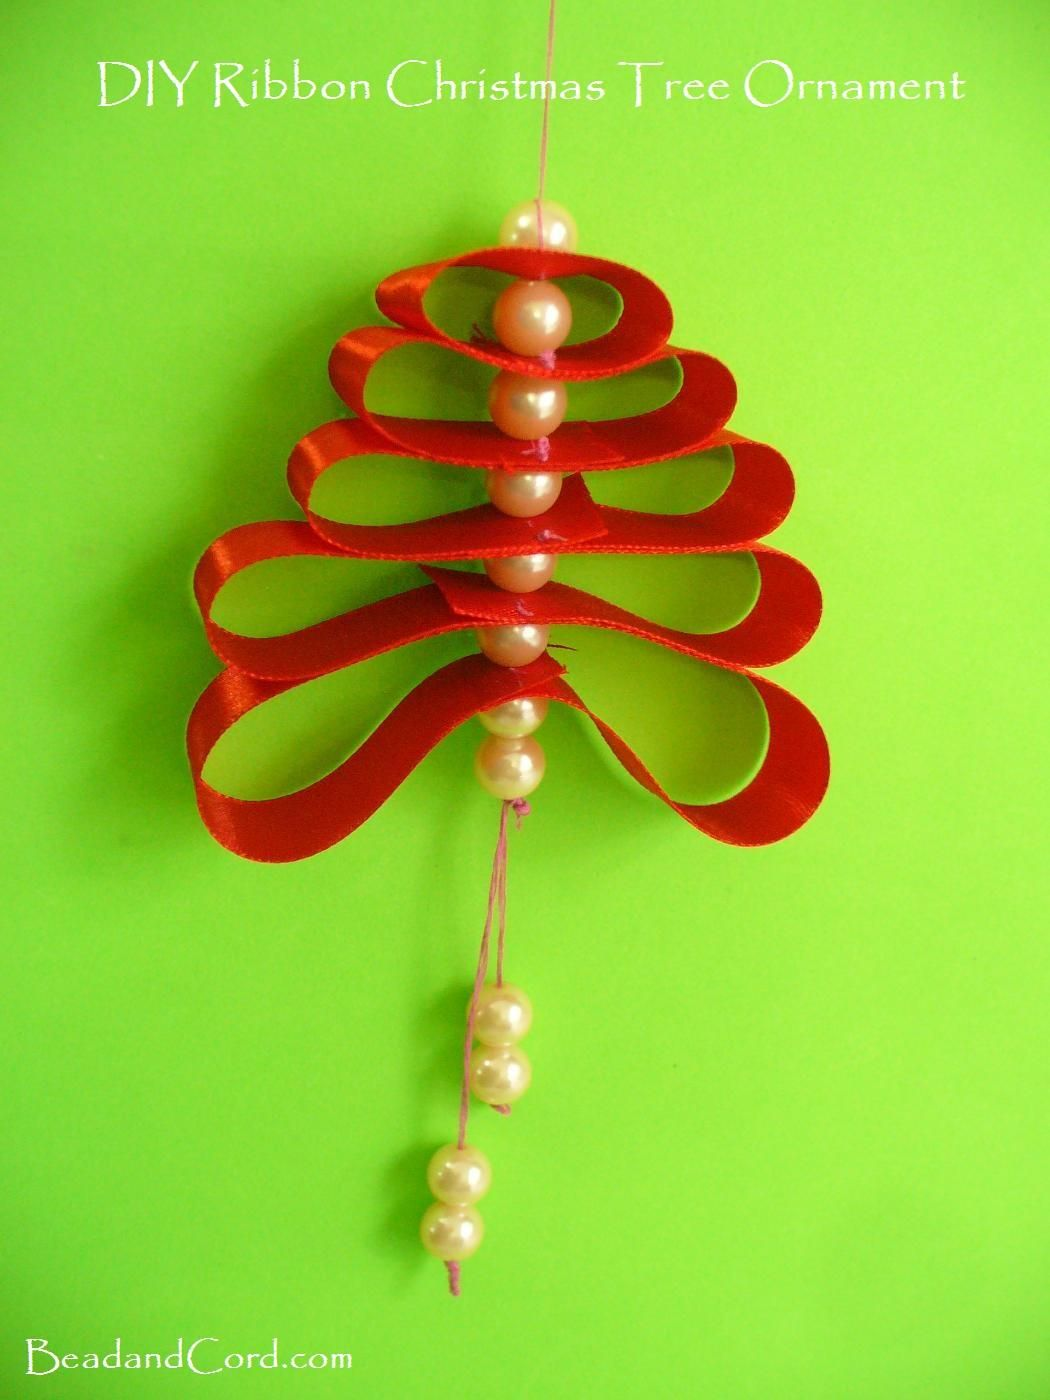 DIY Christmas Ornament - Ribbon Loop Tree